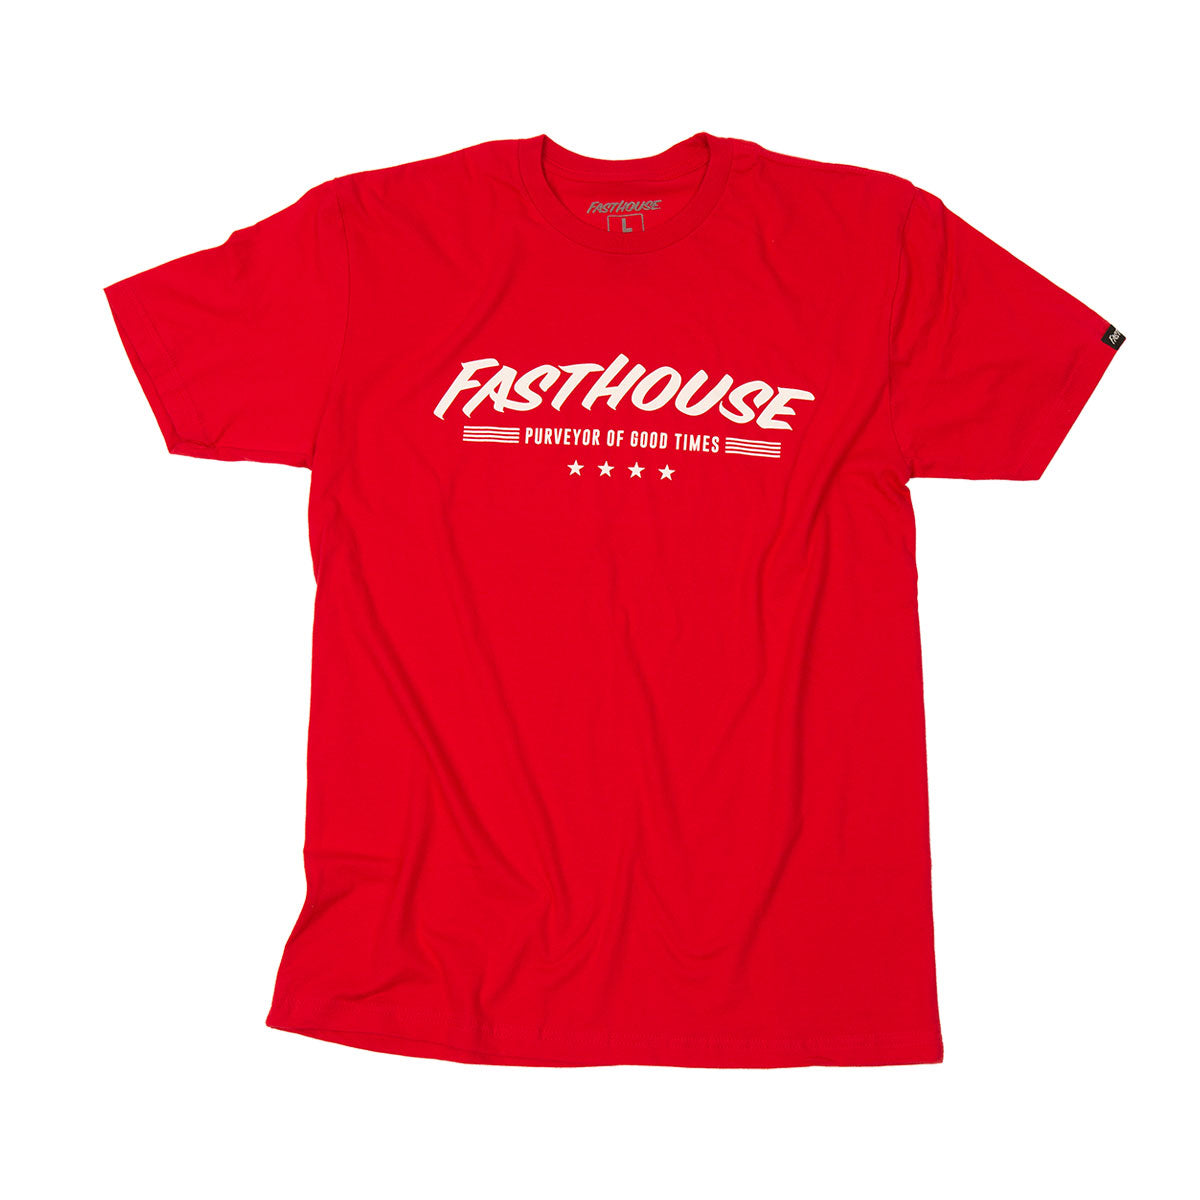 Fasthouse - Four Stars Youth Tee - Red